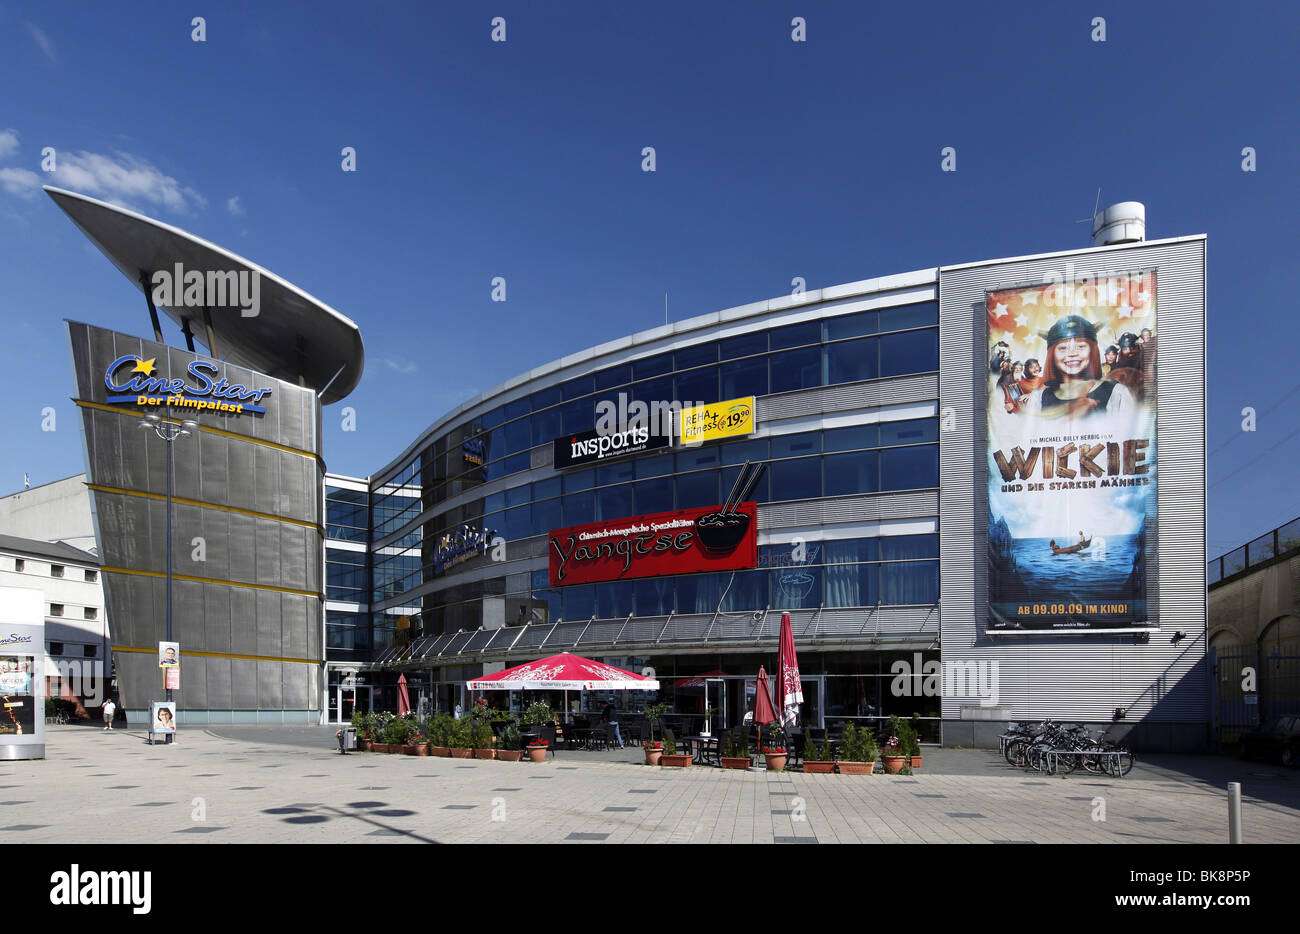 Cine Star cinema, Dortmund, North Rhine-Westphalia, Germany, Europe - Stock Image